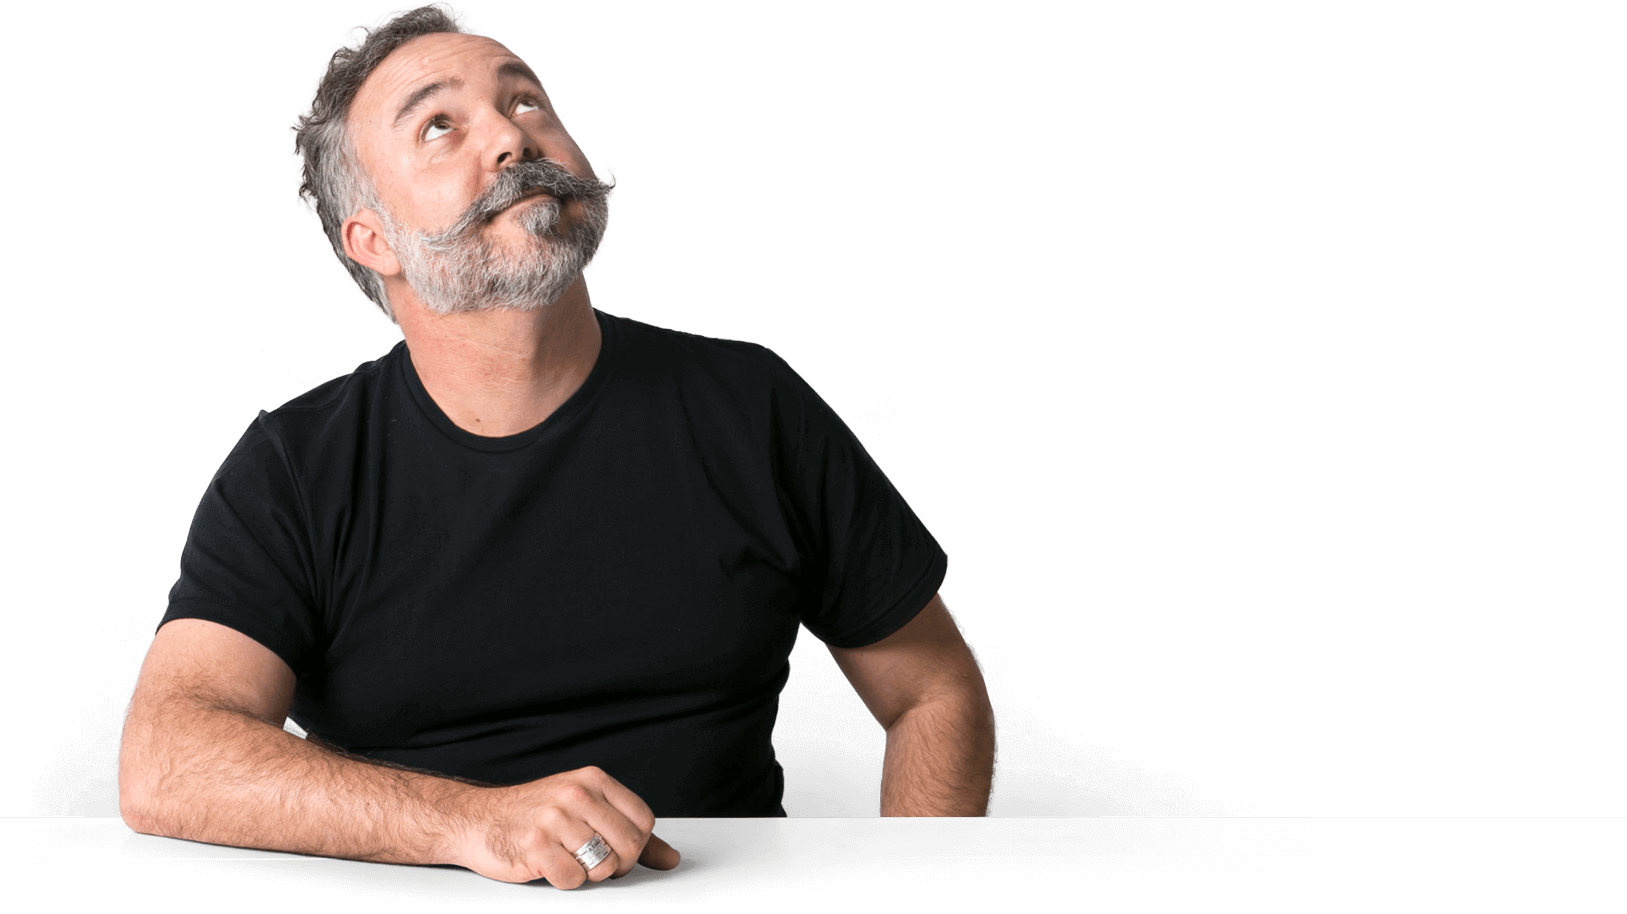 Vaughan Rowsell, Chief Product Officer and founder of Vend POS